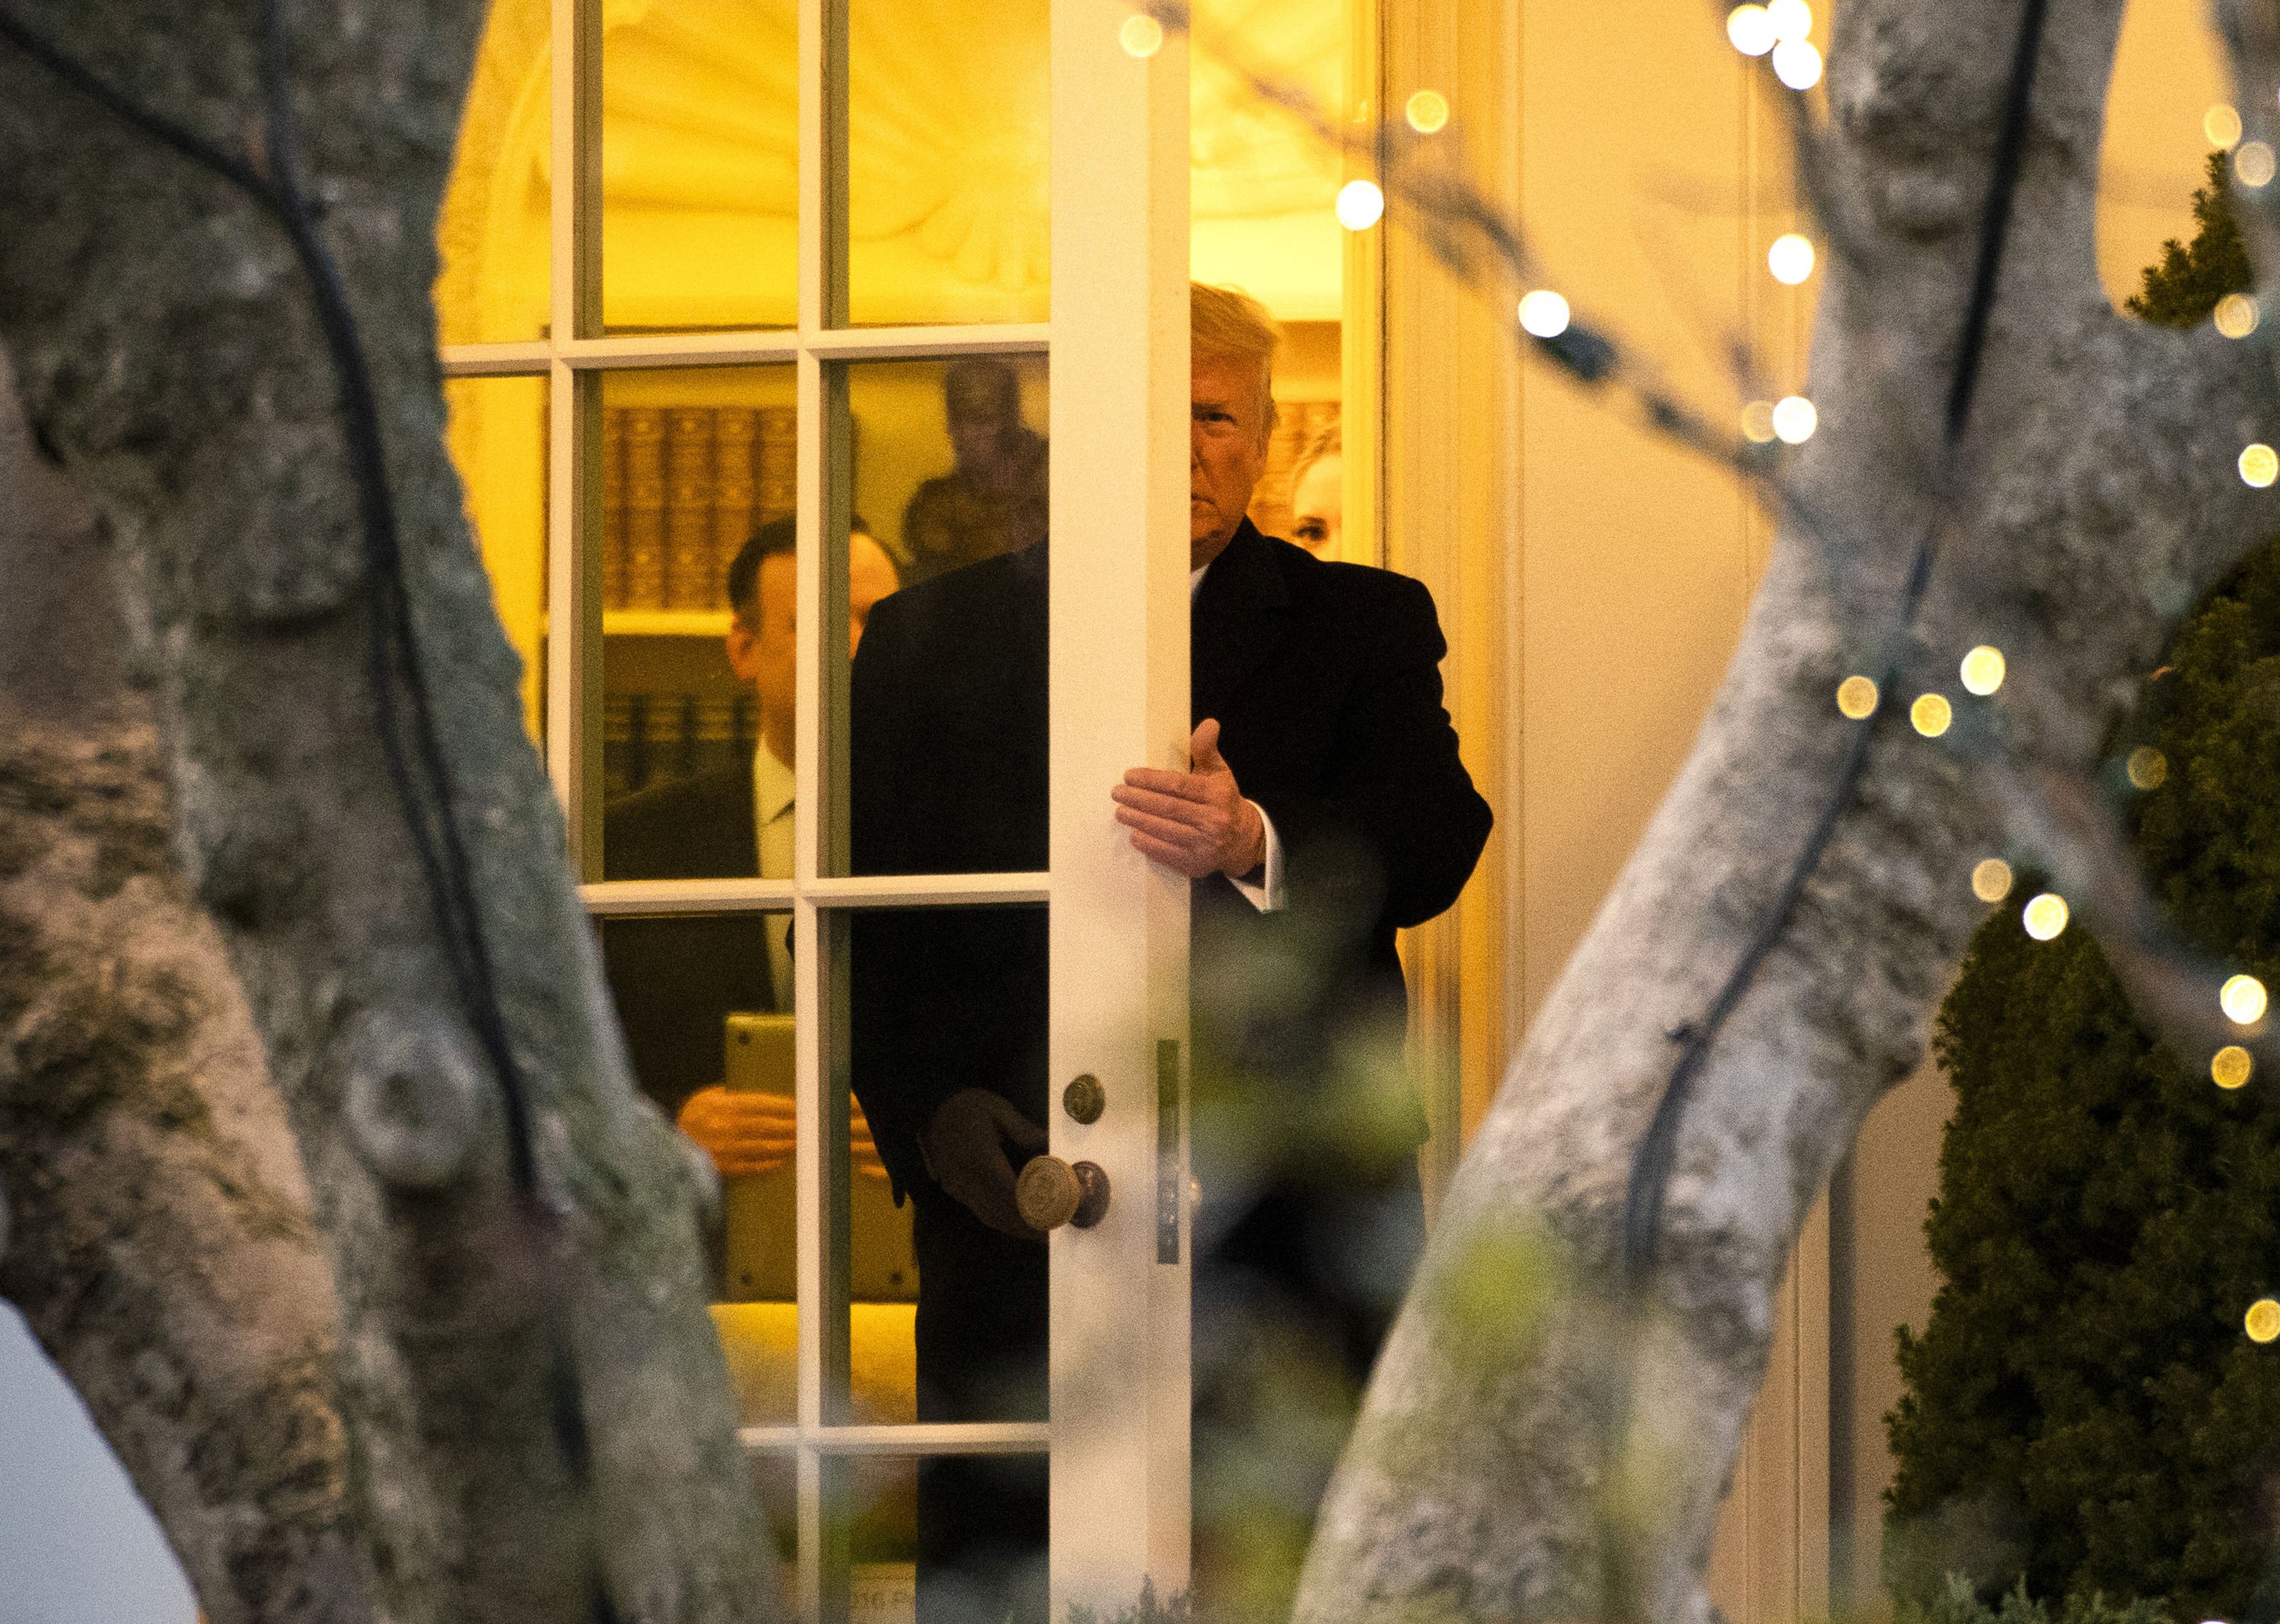 President Donald Trump departs the Oval Office at the White House in Washington on Wednesday evening, December 18, 2019, for a scheduled campaign event in Battle Creek, Michigan.